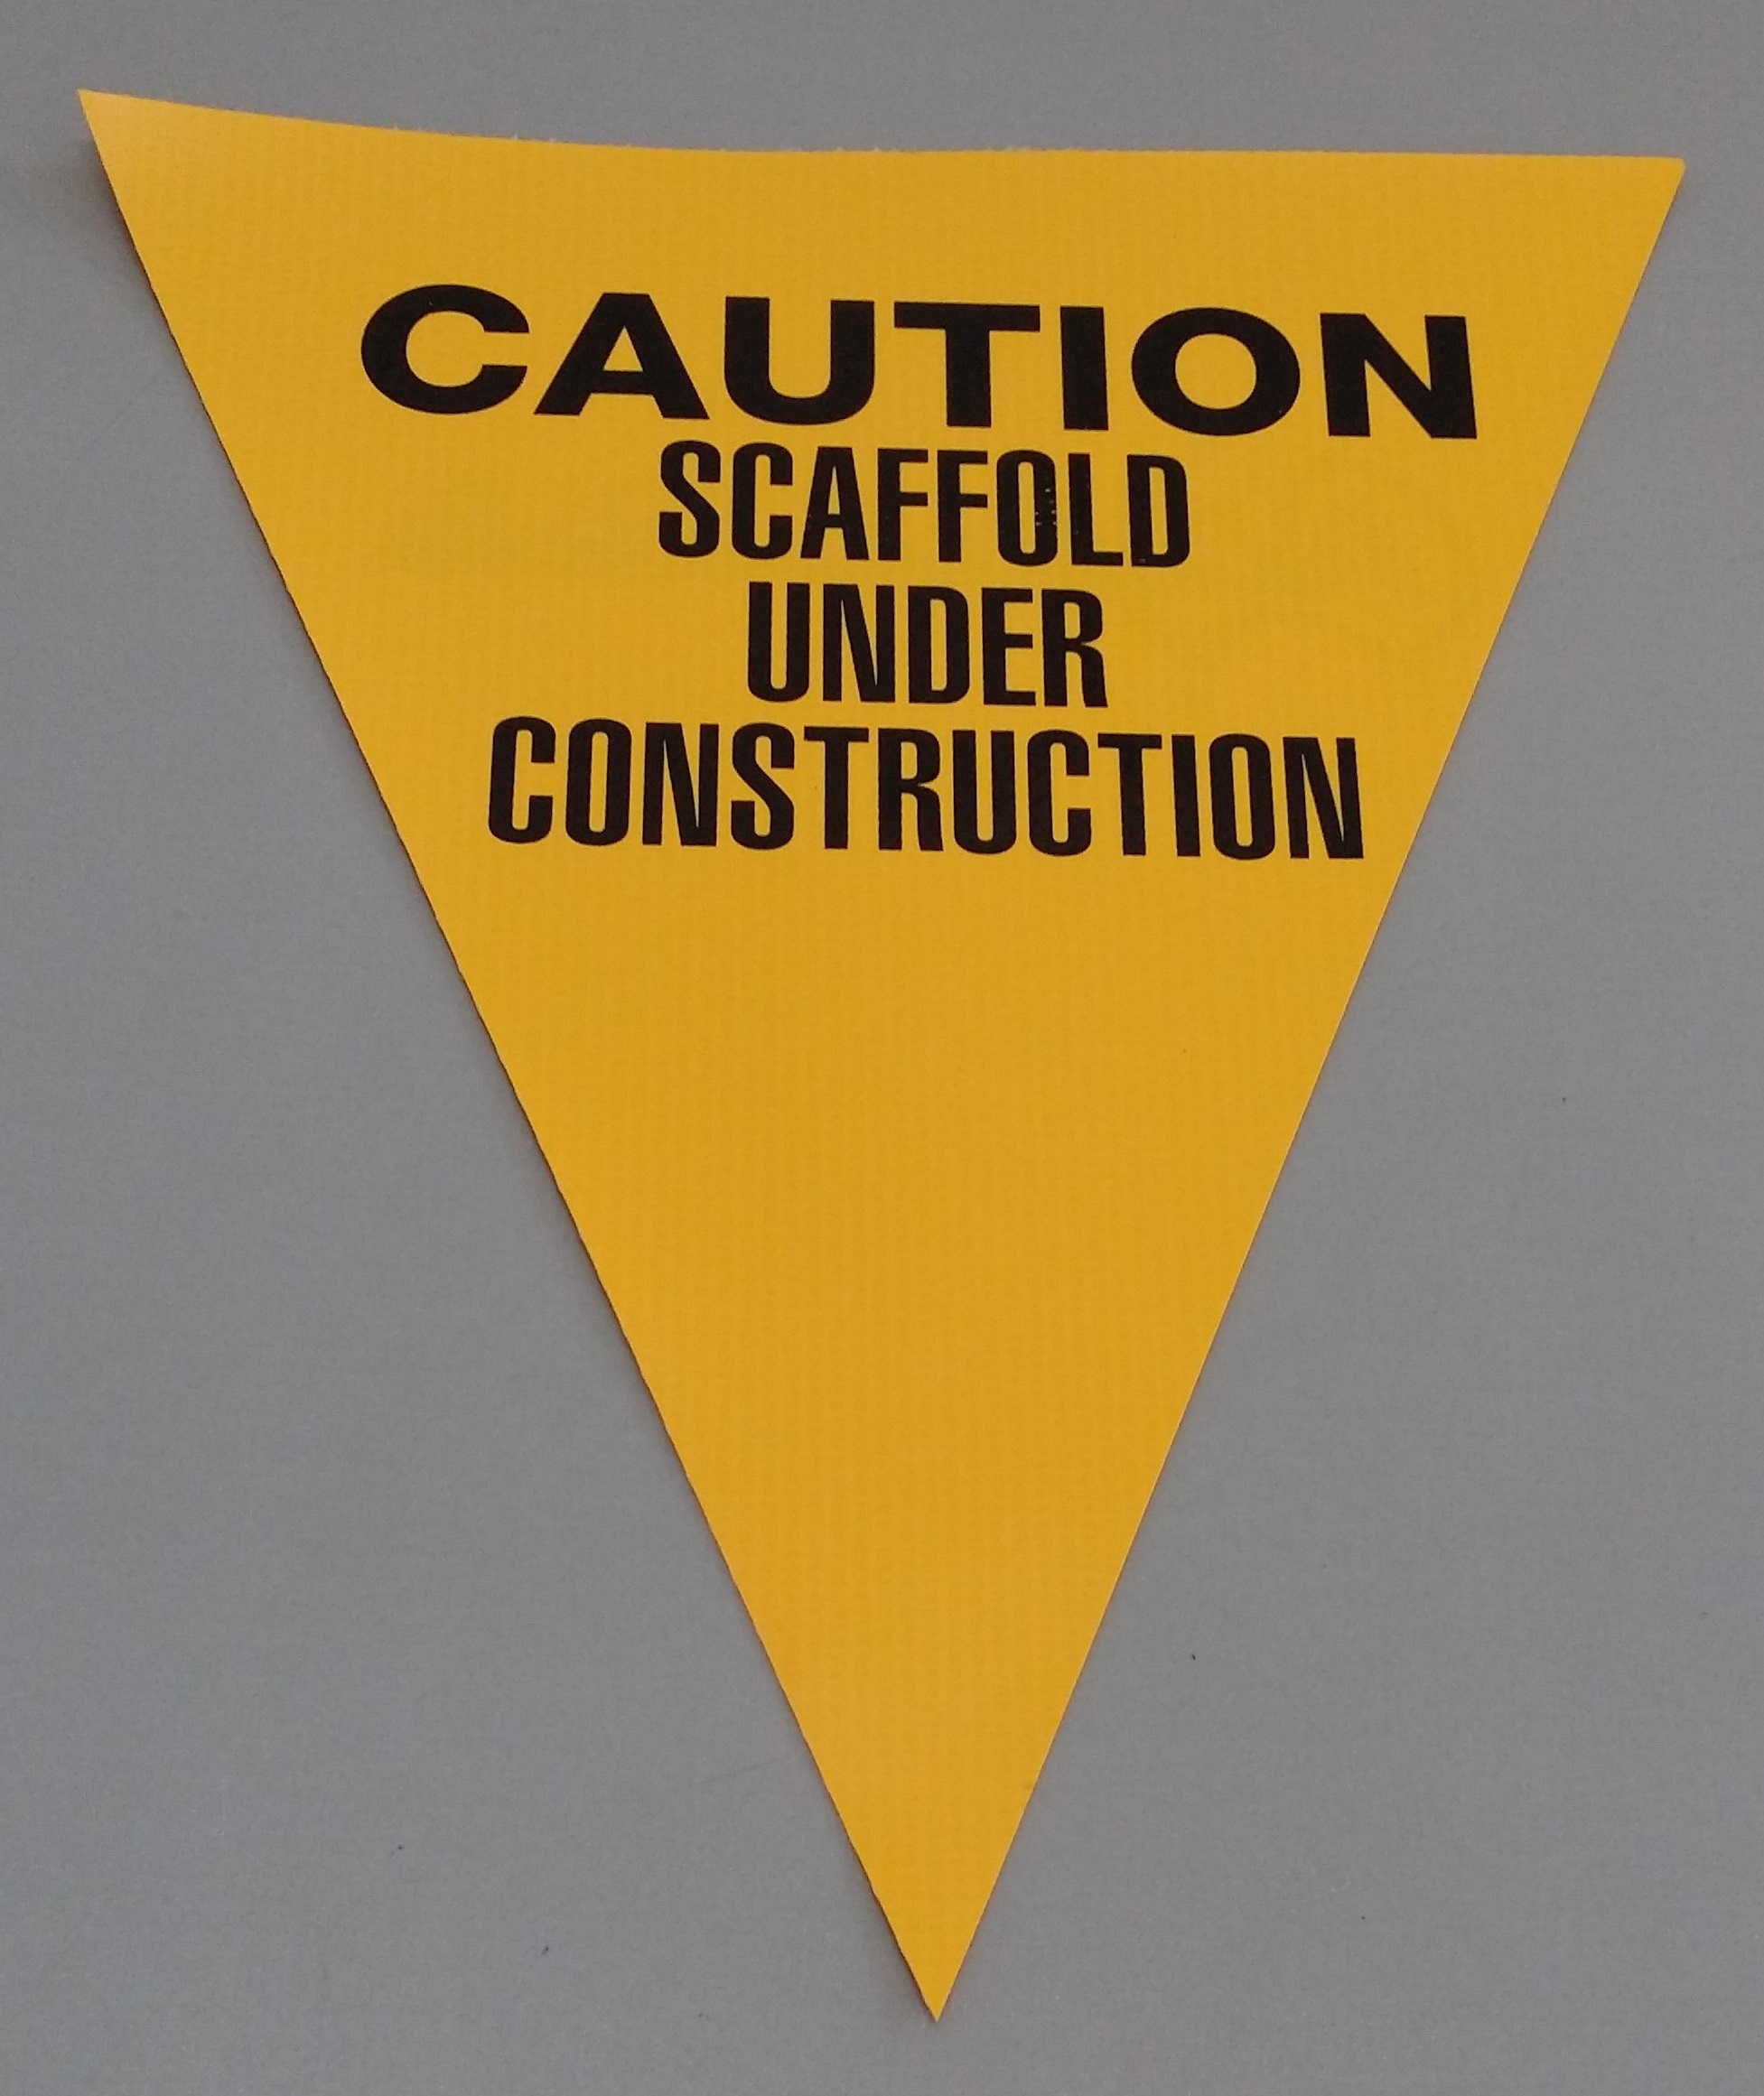 Caution Scaffold Under Construction (yellow)